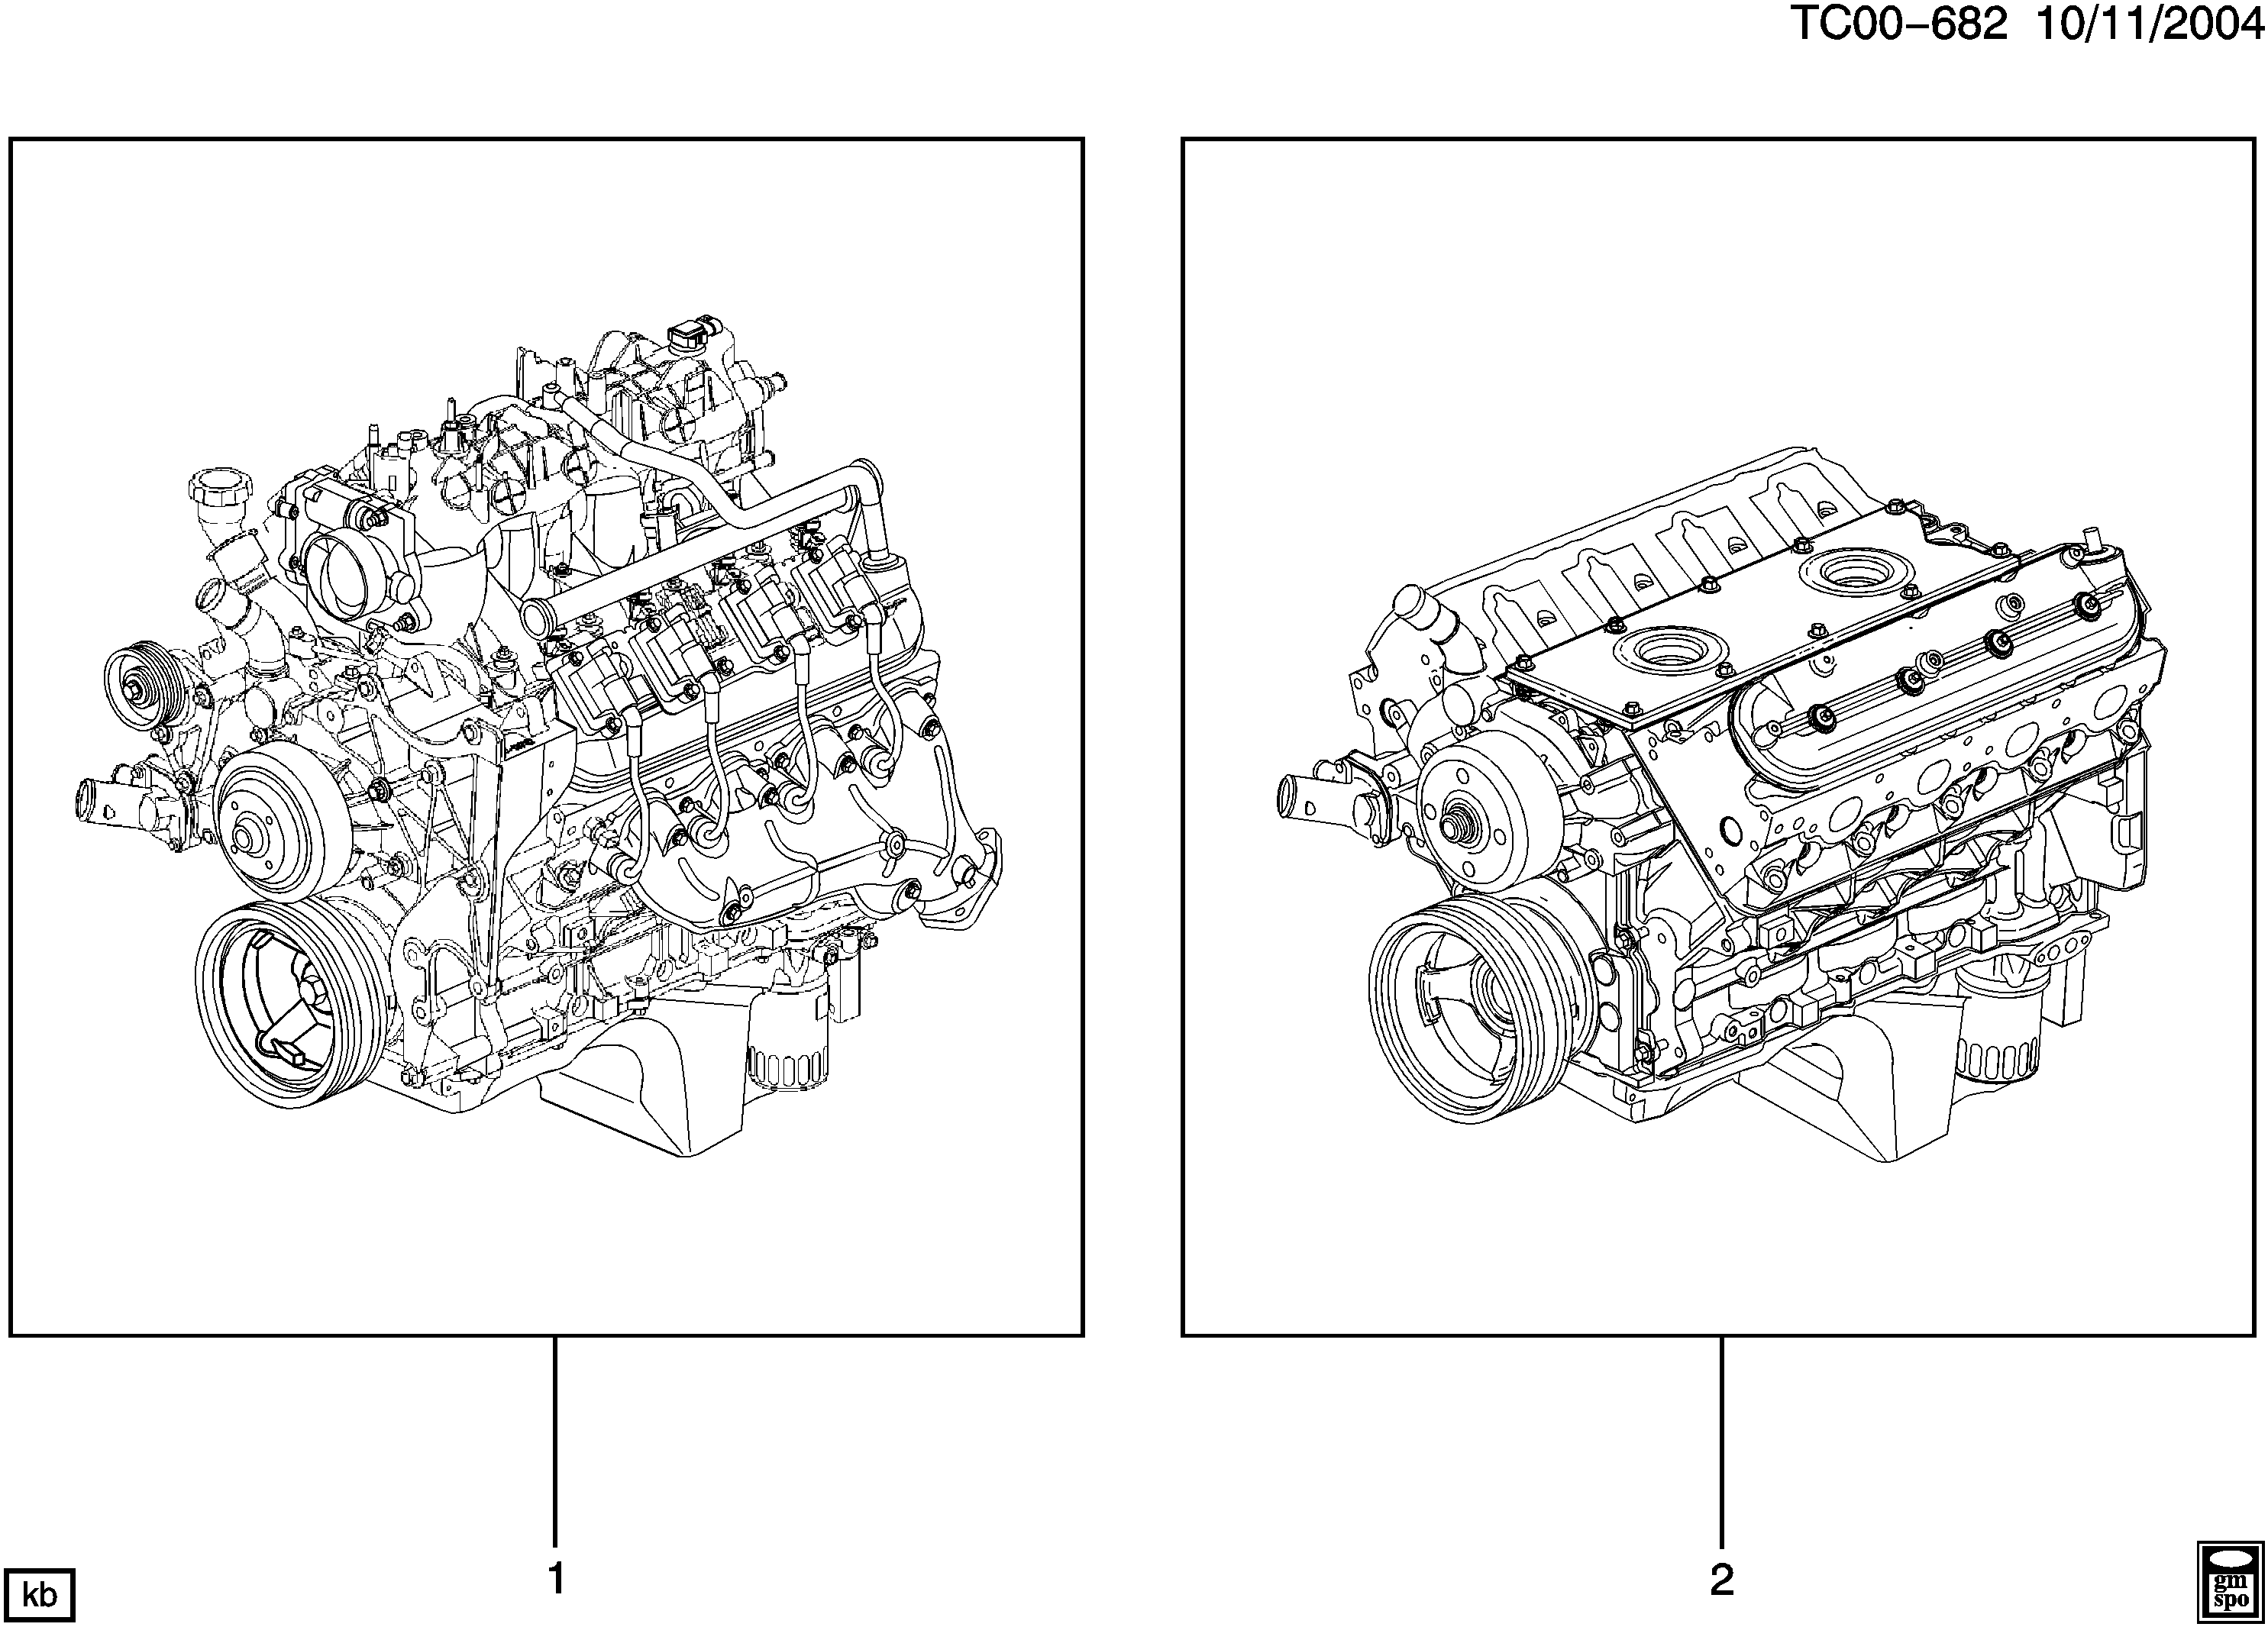 2004-2007 N ENGINE ASM & PARTIAL ENGINE (LQ4/6.0U)